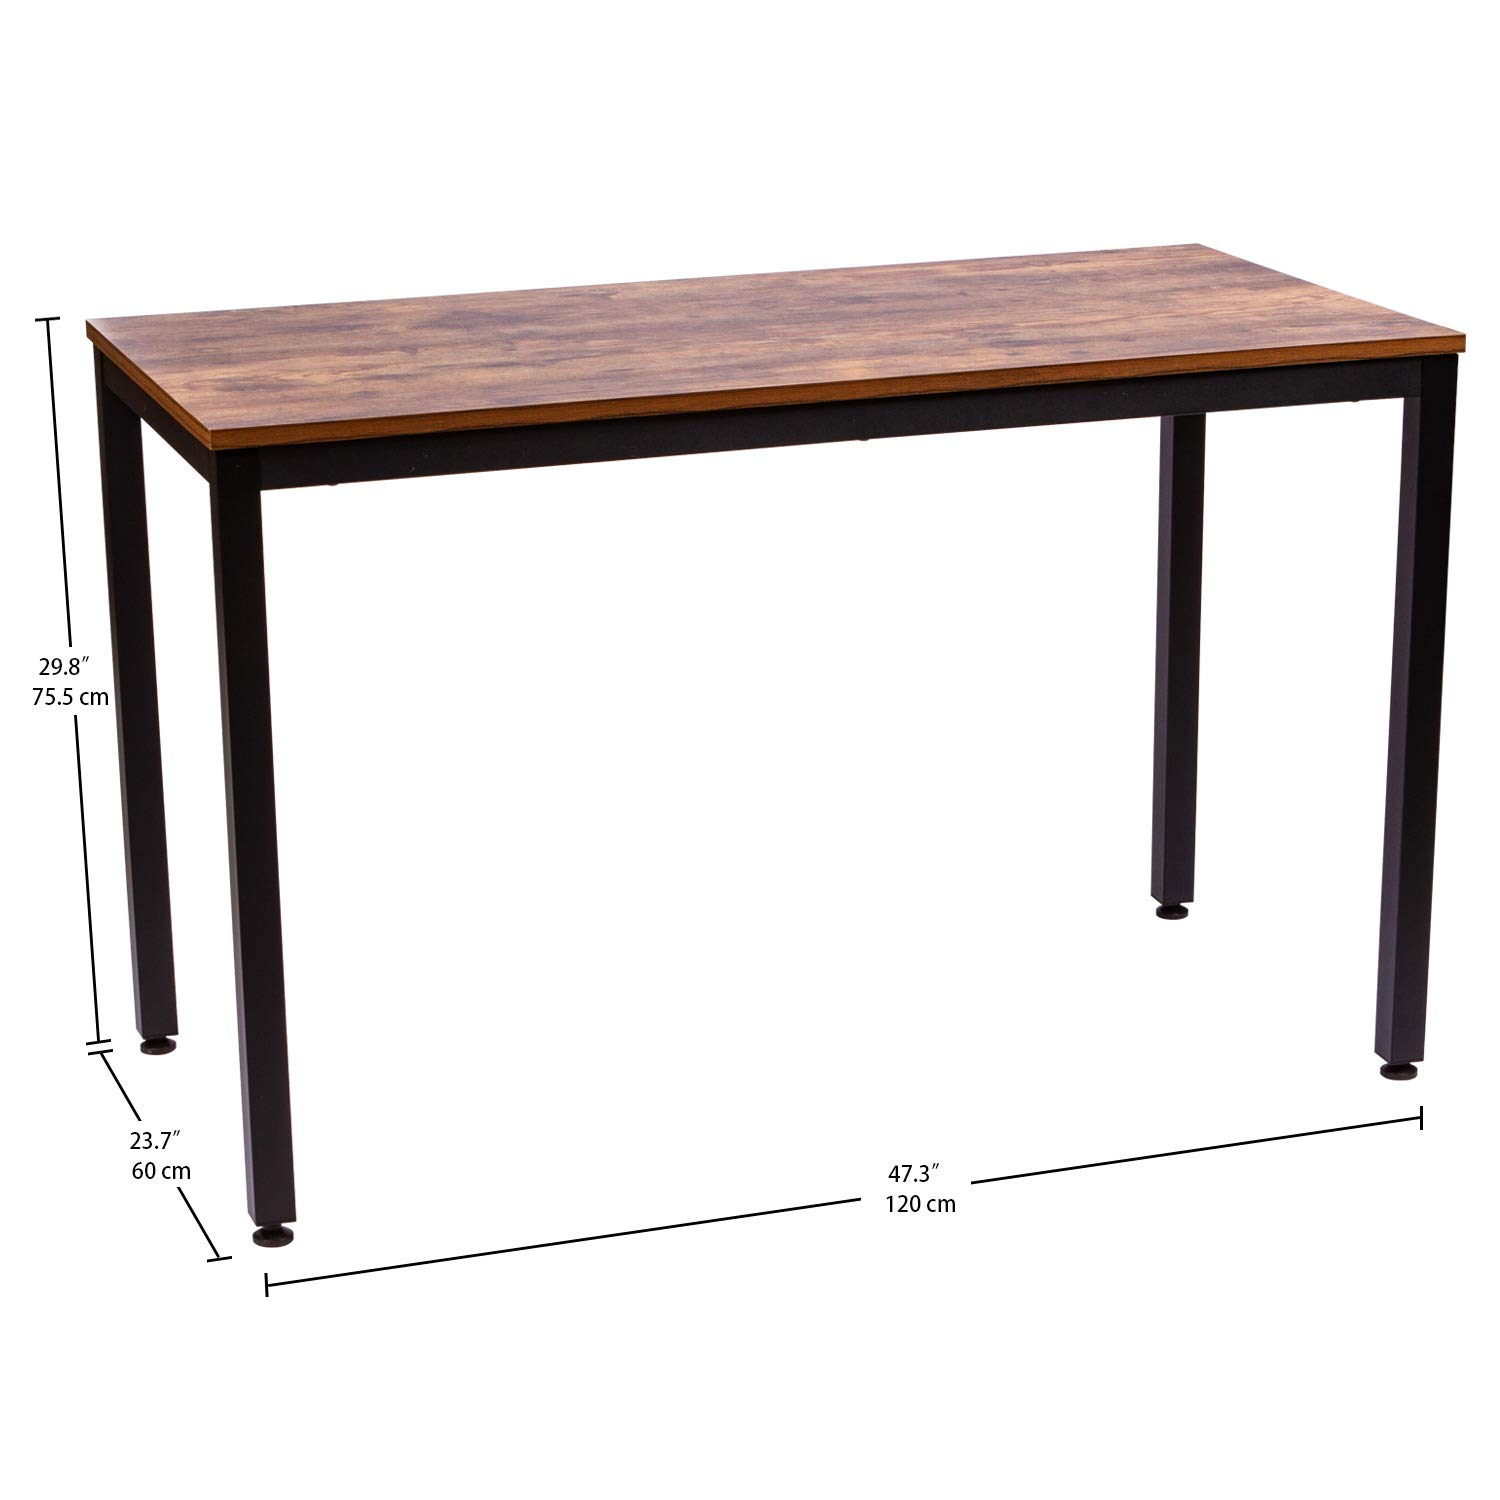 IRONCK Computer Desk, 47'' Office Desk with 0.7'' Thicker Tabletop 1.6'' Sturdy Metal Frame, Simple Study Table, Industrial Style Desk for Home Office, Matt Brown by IRONCK (Image #3)